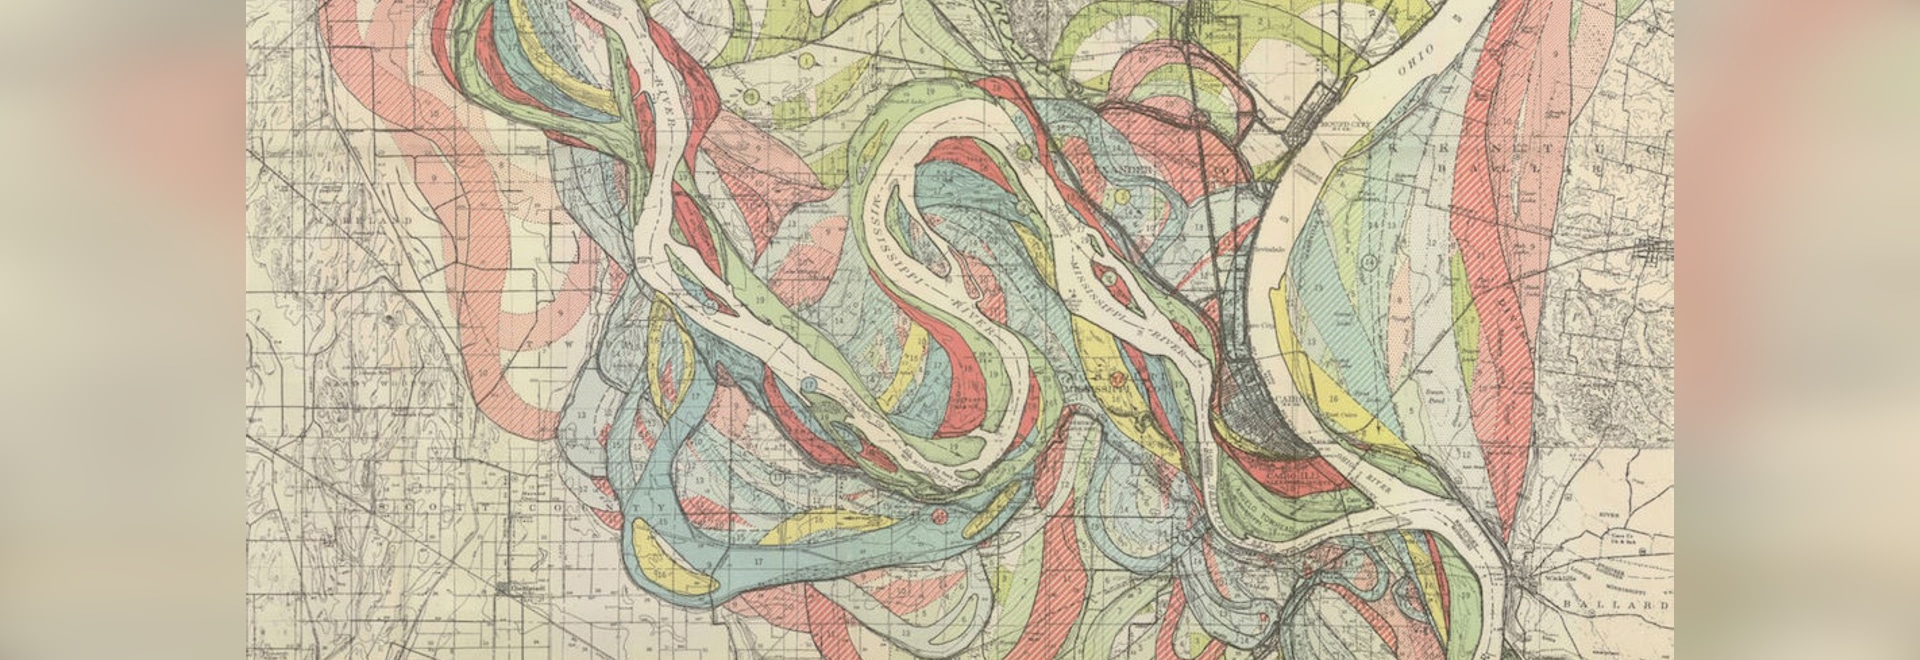 Map of the historical meanders of the Mississippi river (detail), by Harold Fisk, 1944.